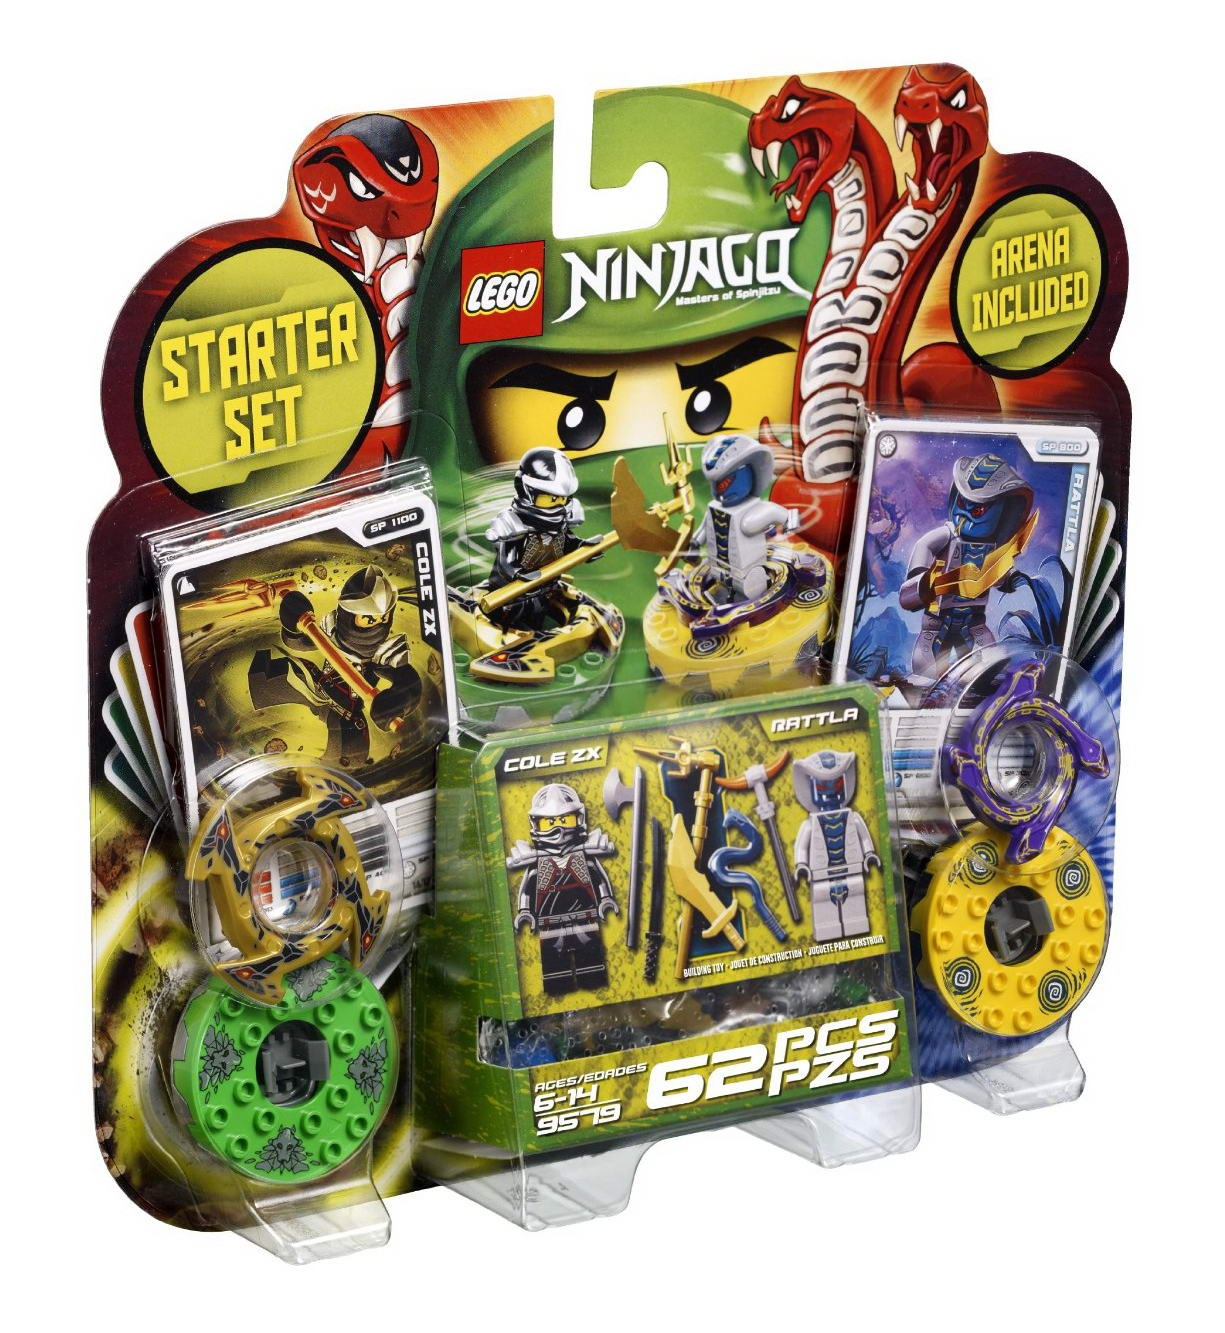 2257 Spinjitzu Starter Set | Ninjago Wiki | FANDOM powered ...